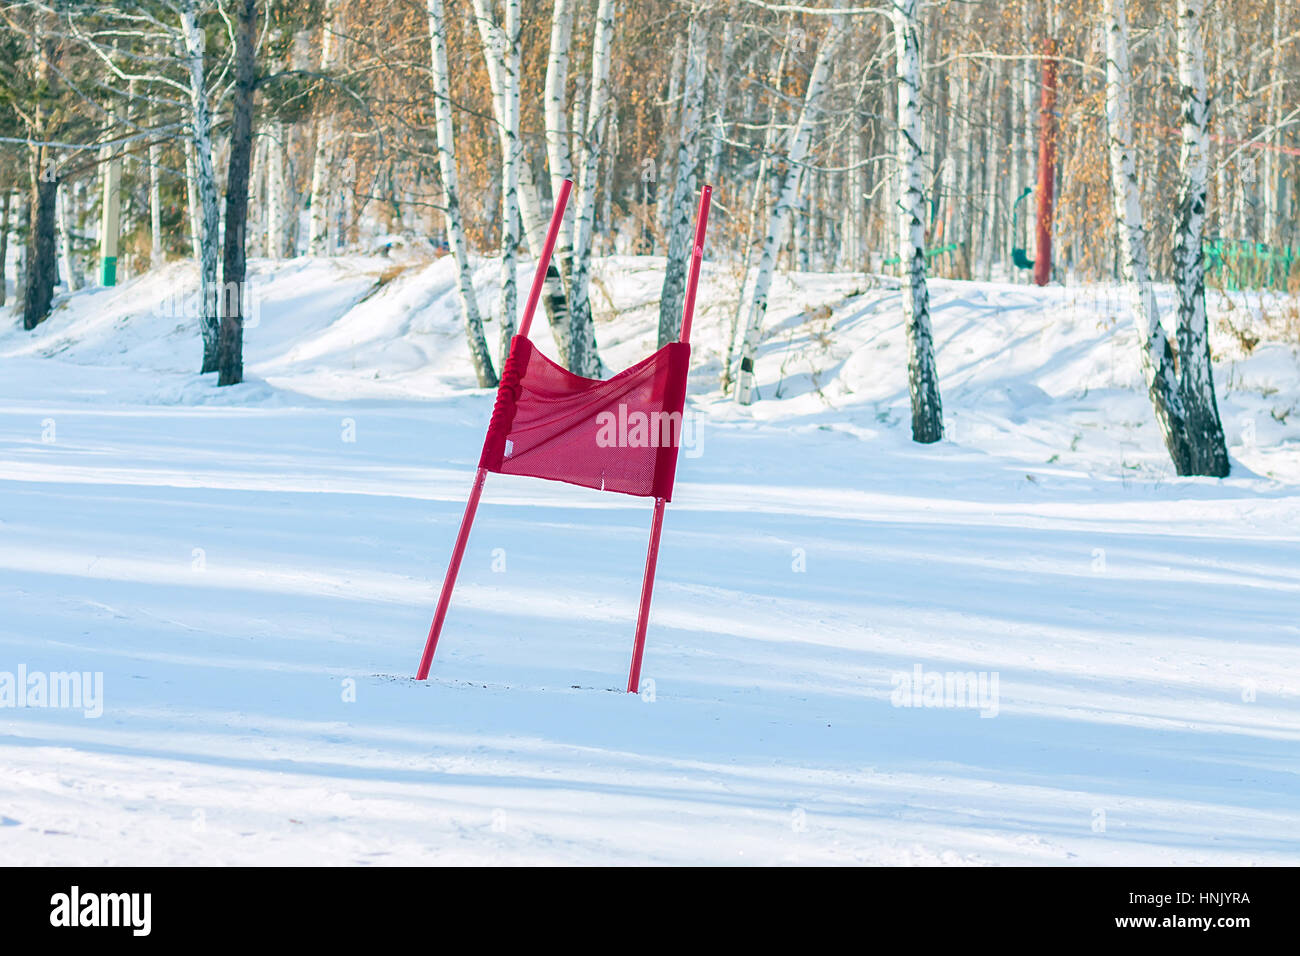 Slalom flag standing in the snow on the ski slopes. - Stock Image